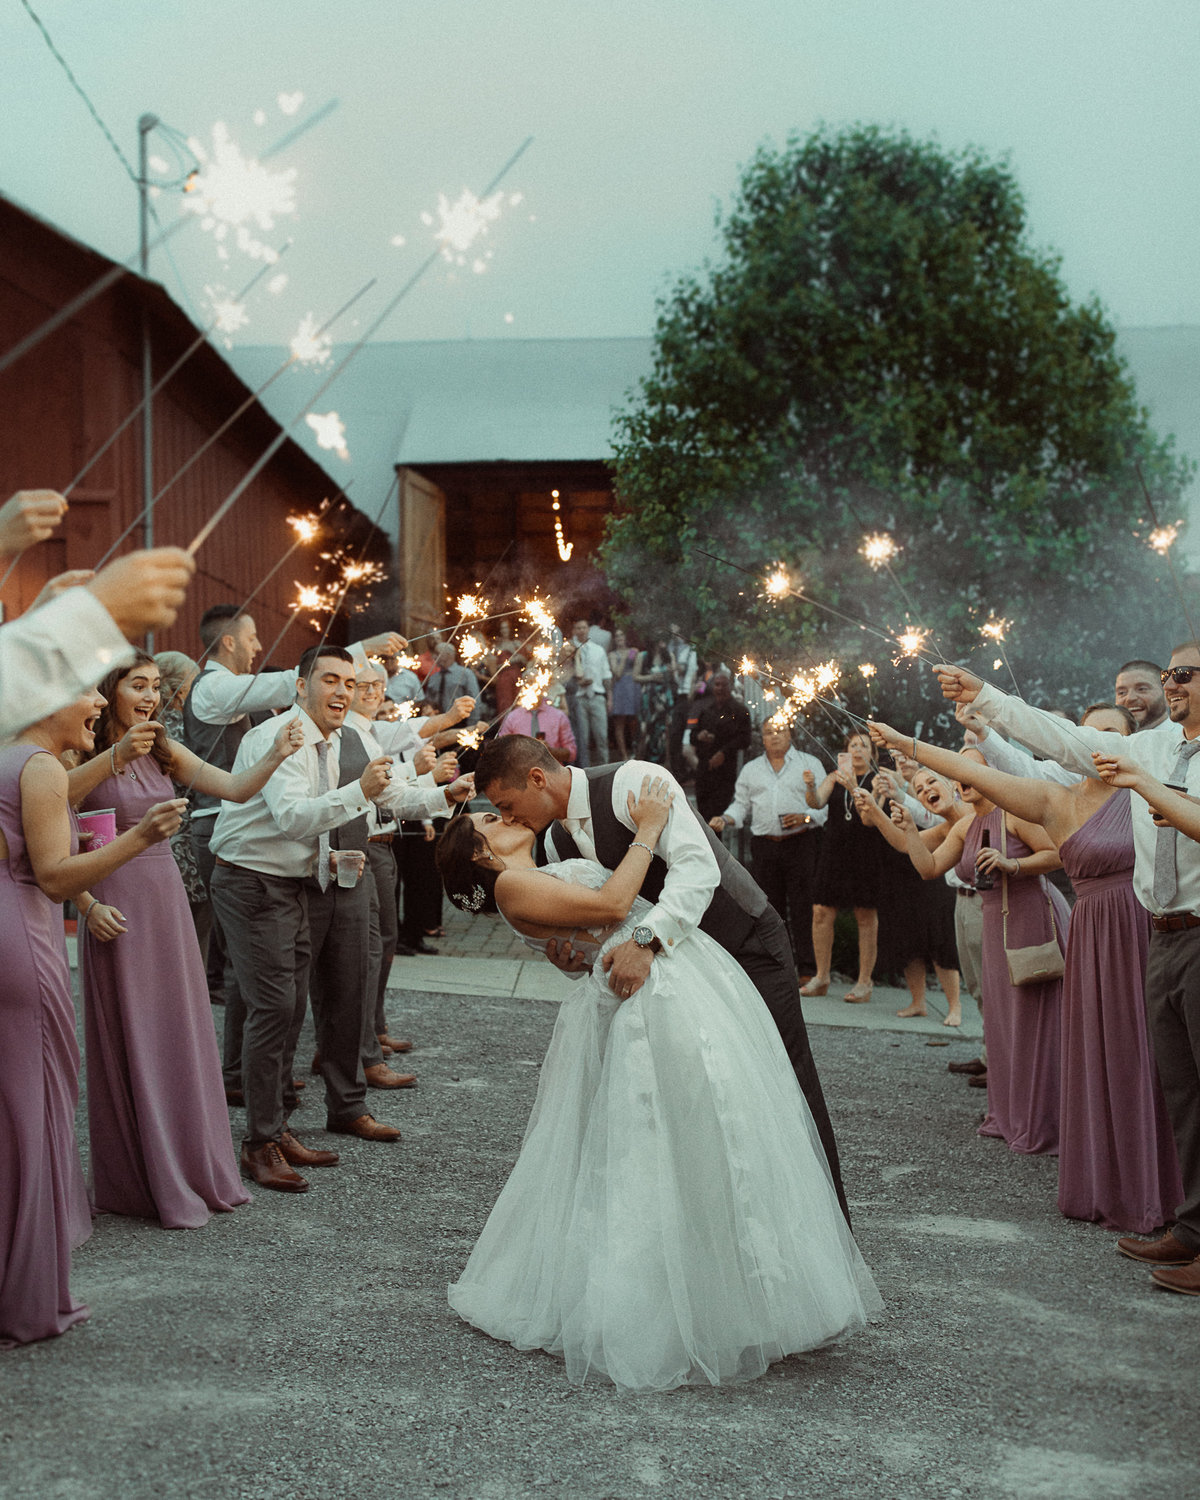 Sparkler Exit Photography by Bridget